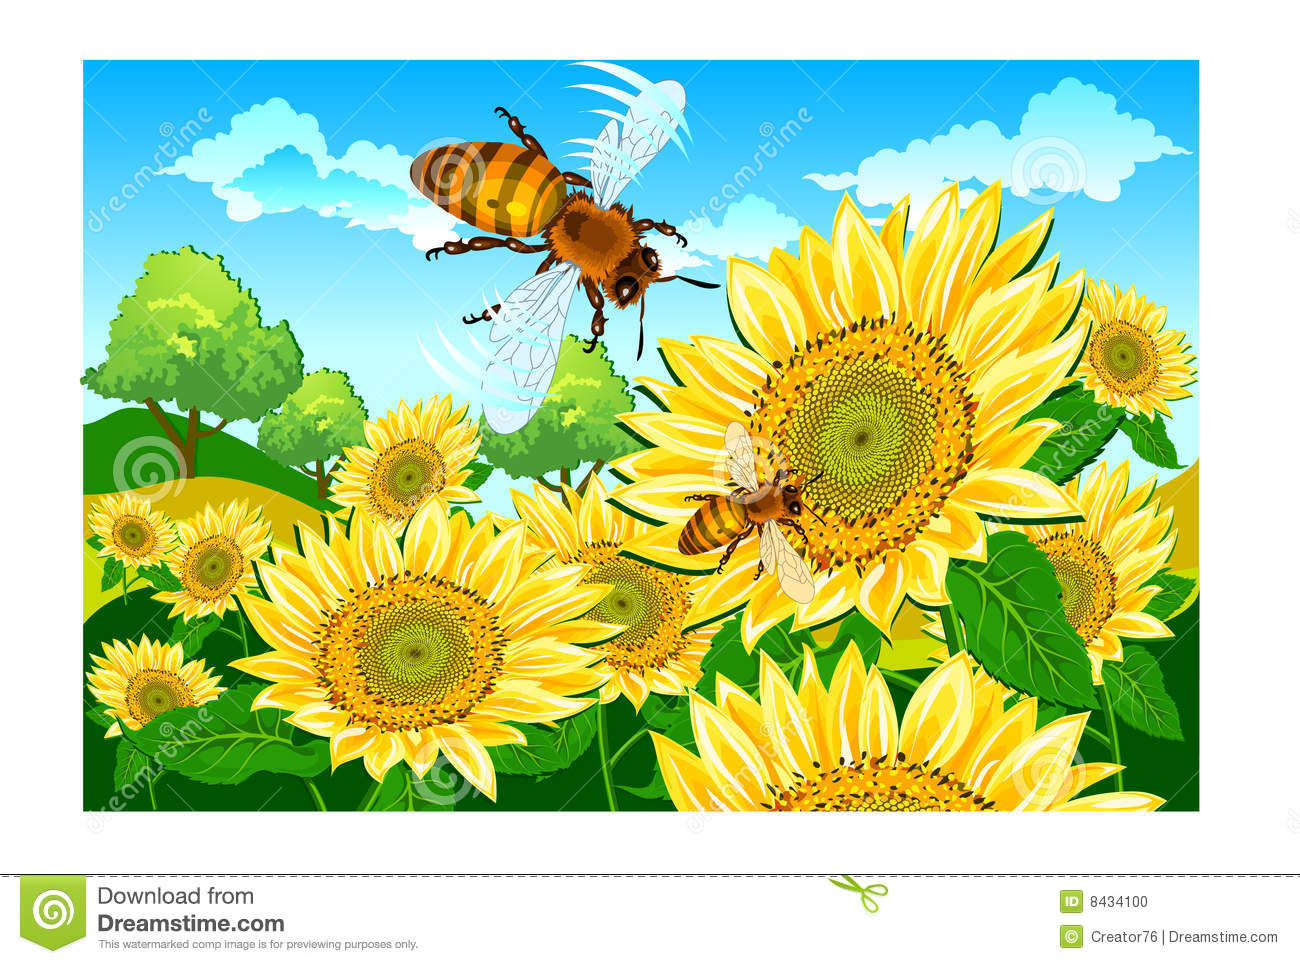 Bee and sunflower stock illustration. Illustration of ...